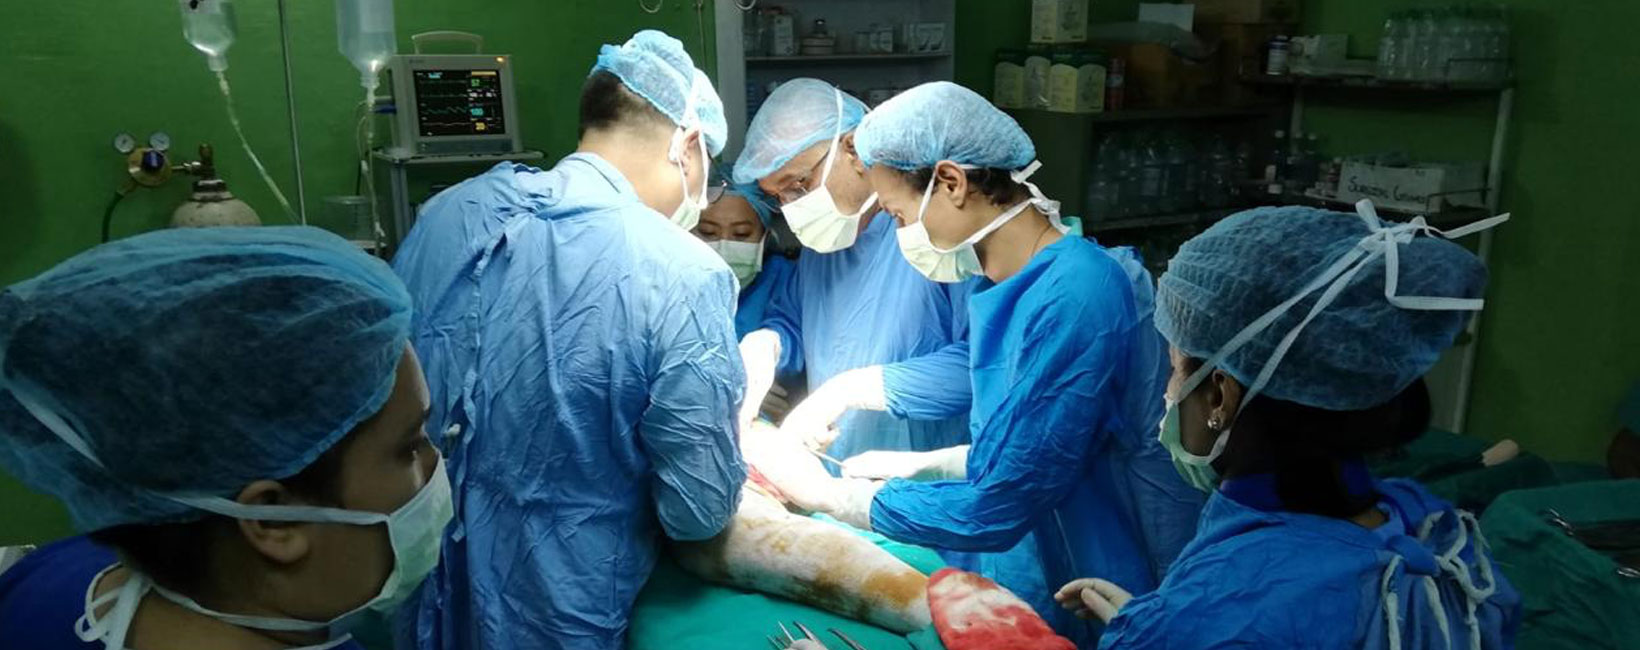 Medical Internship Program in Nepal